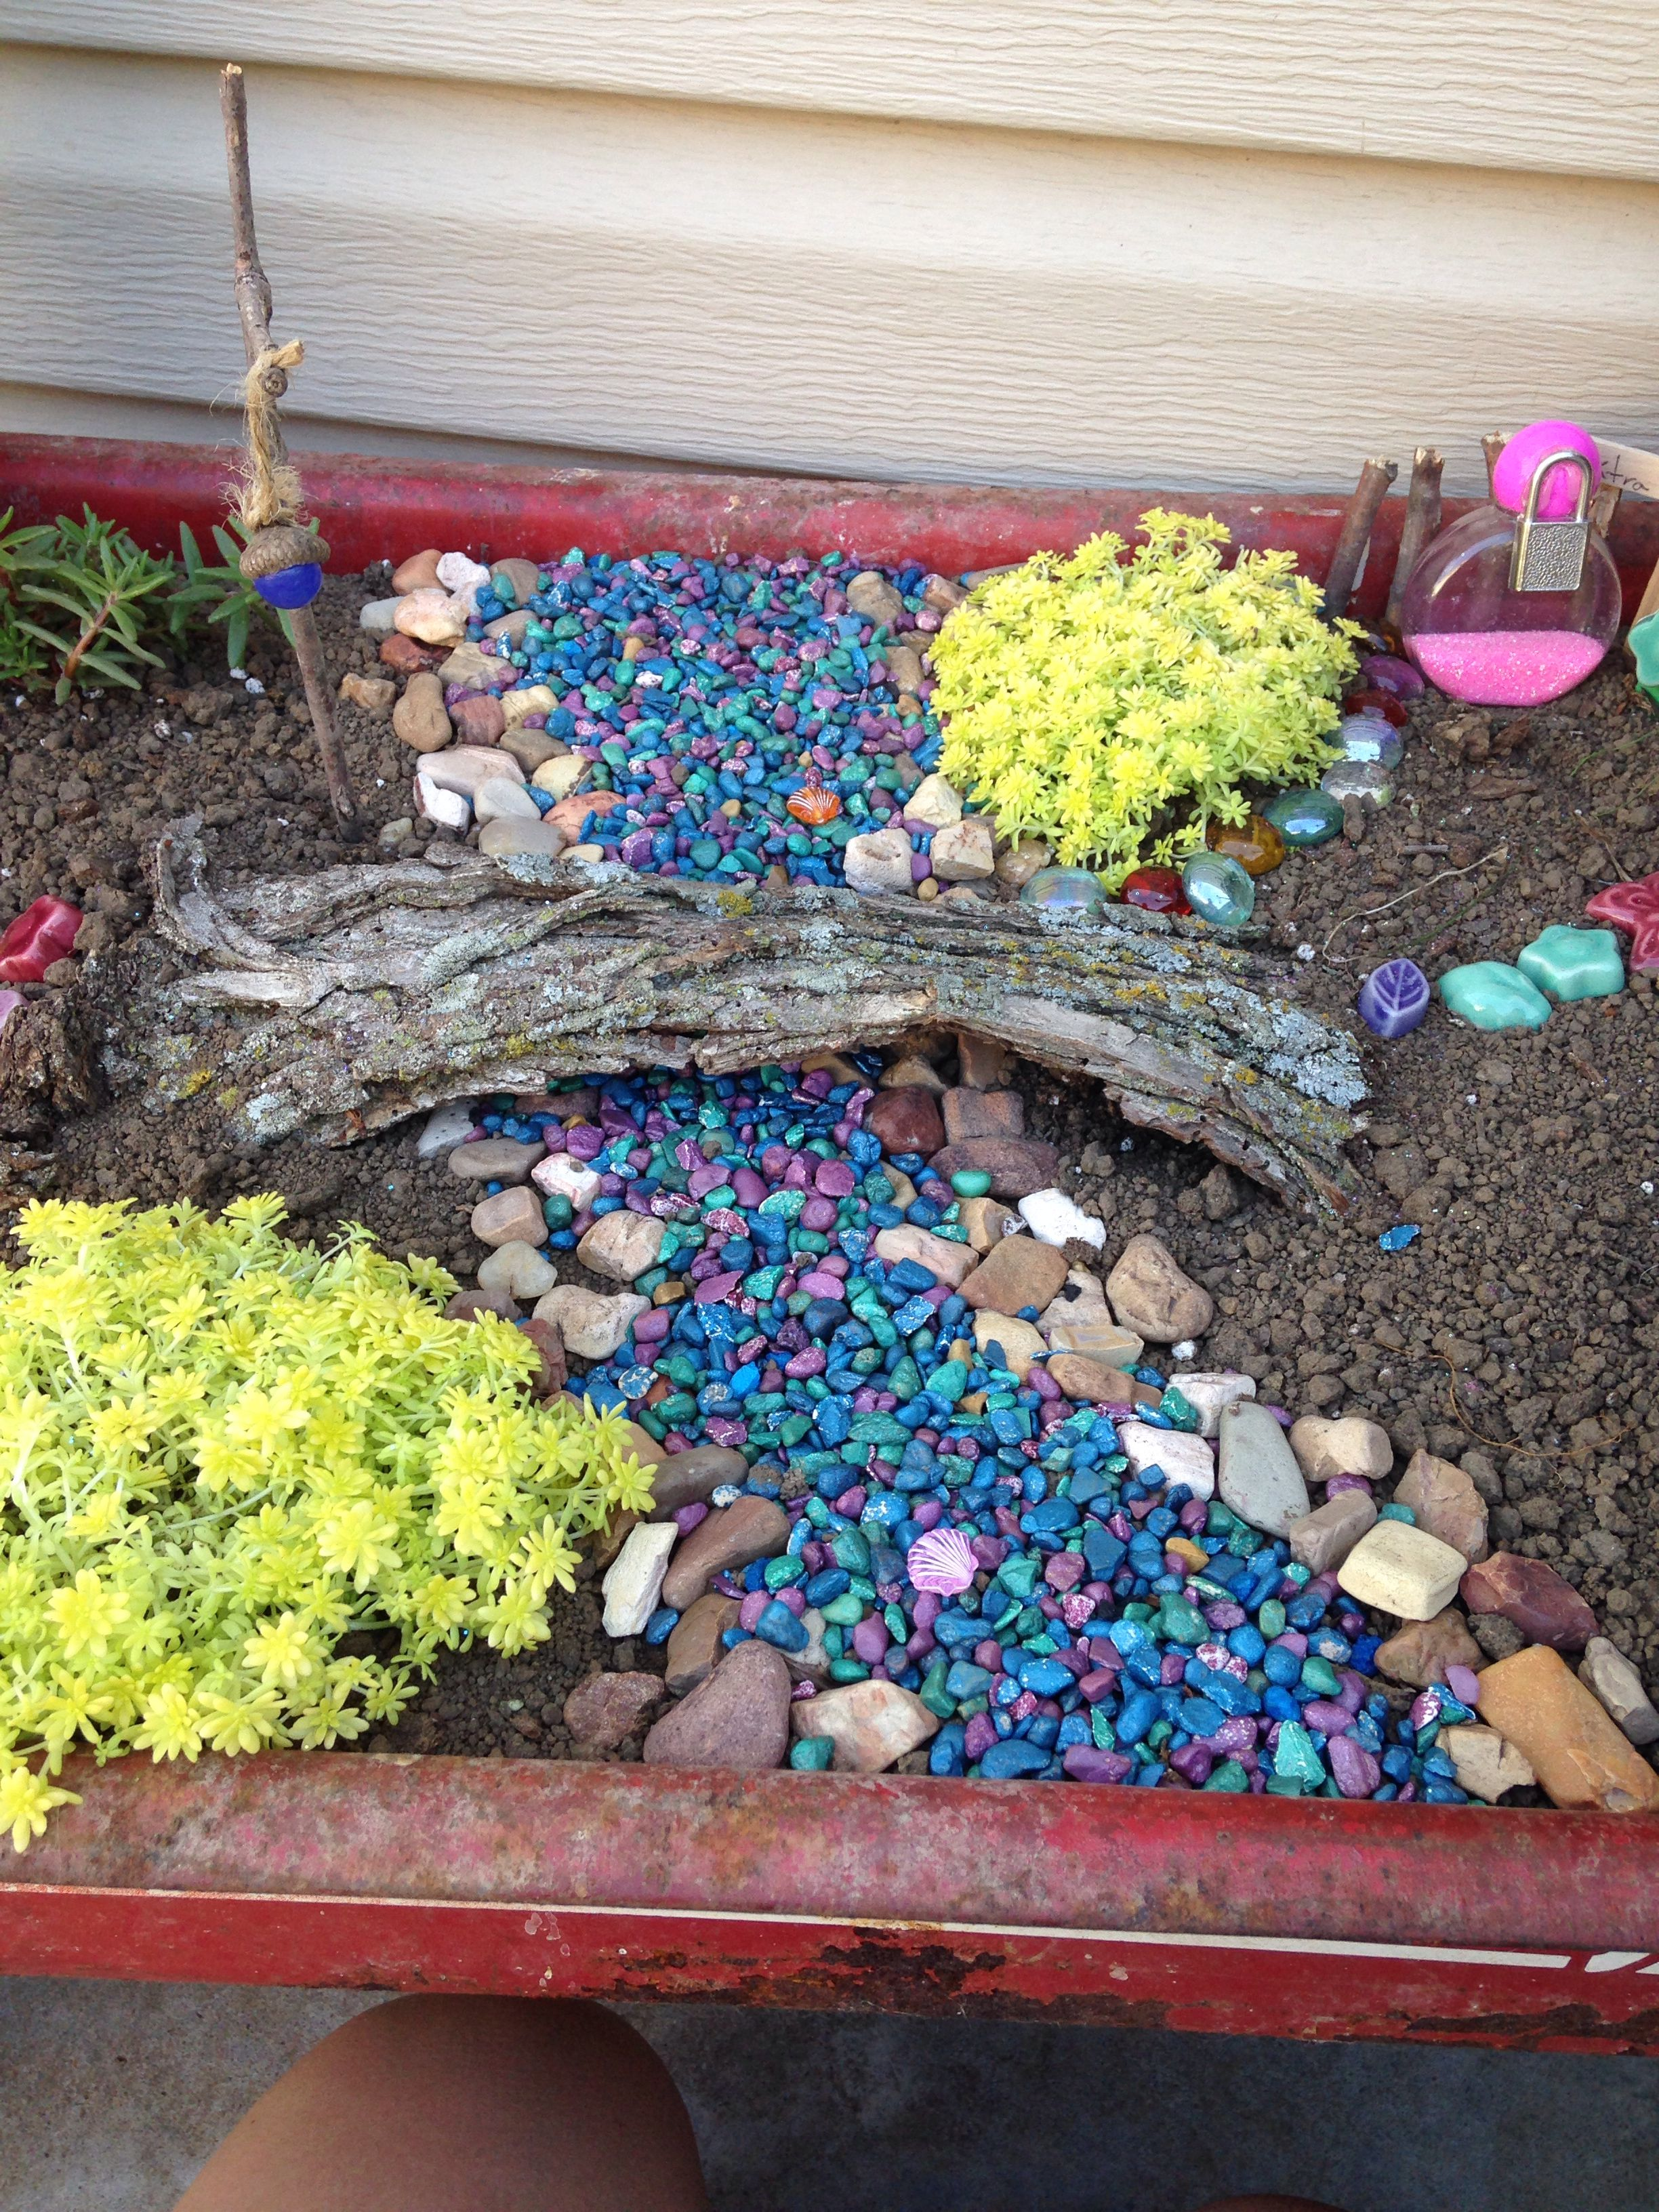 This is a stream made of colored pebbles with a bridge over it.